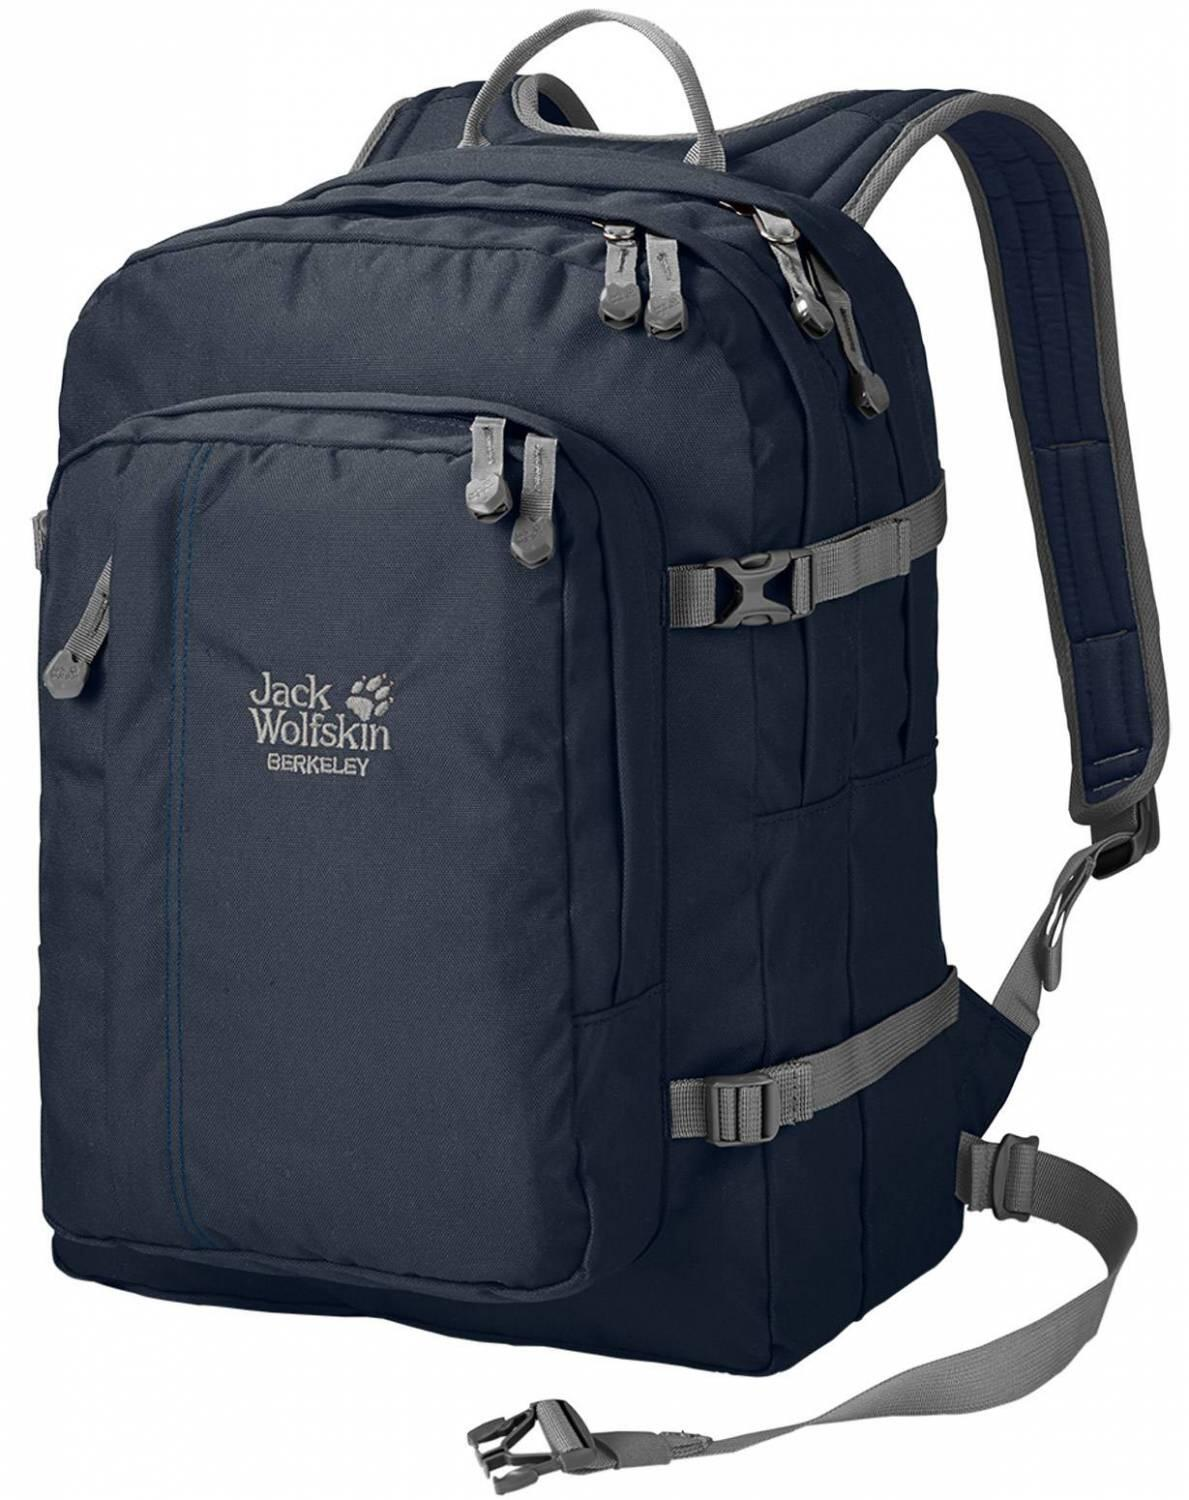 jack-wolfskin-berkeley-daypack-farbe-1010-night-blue-